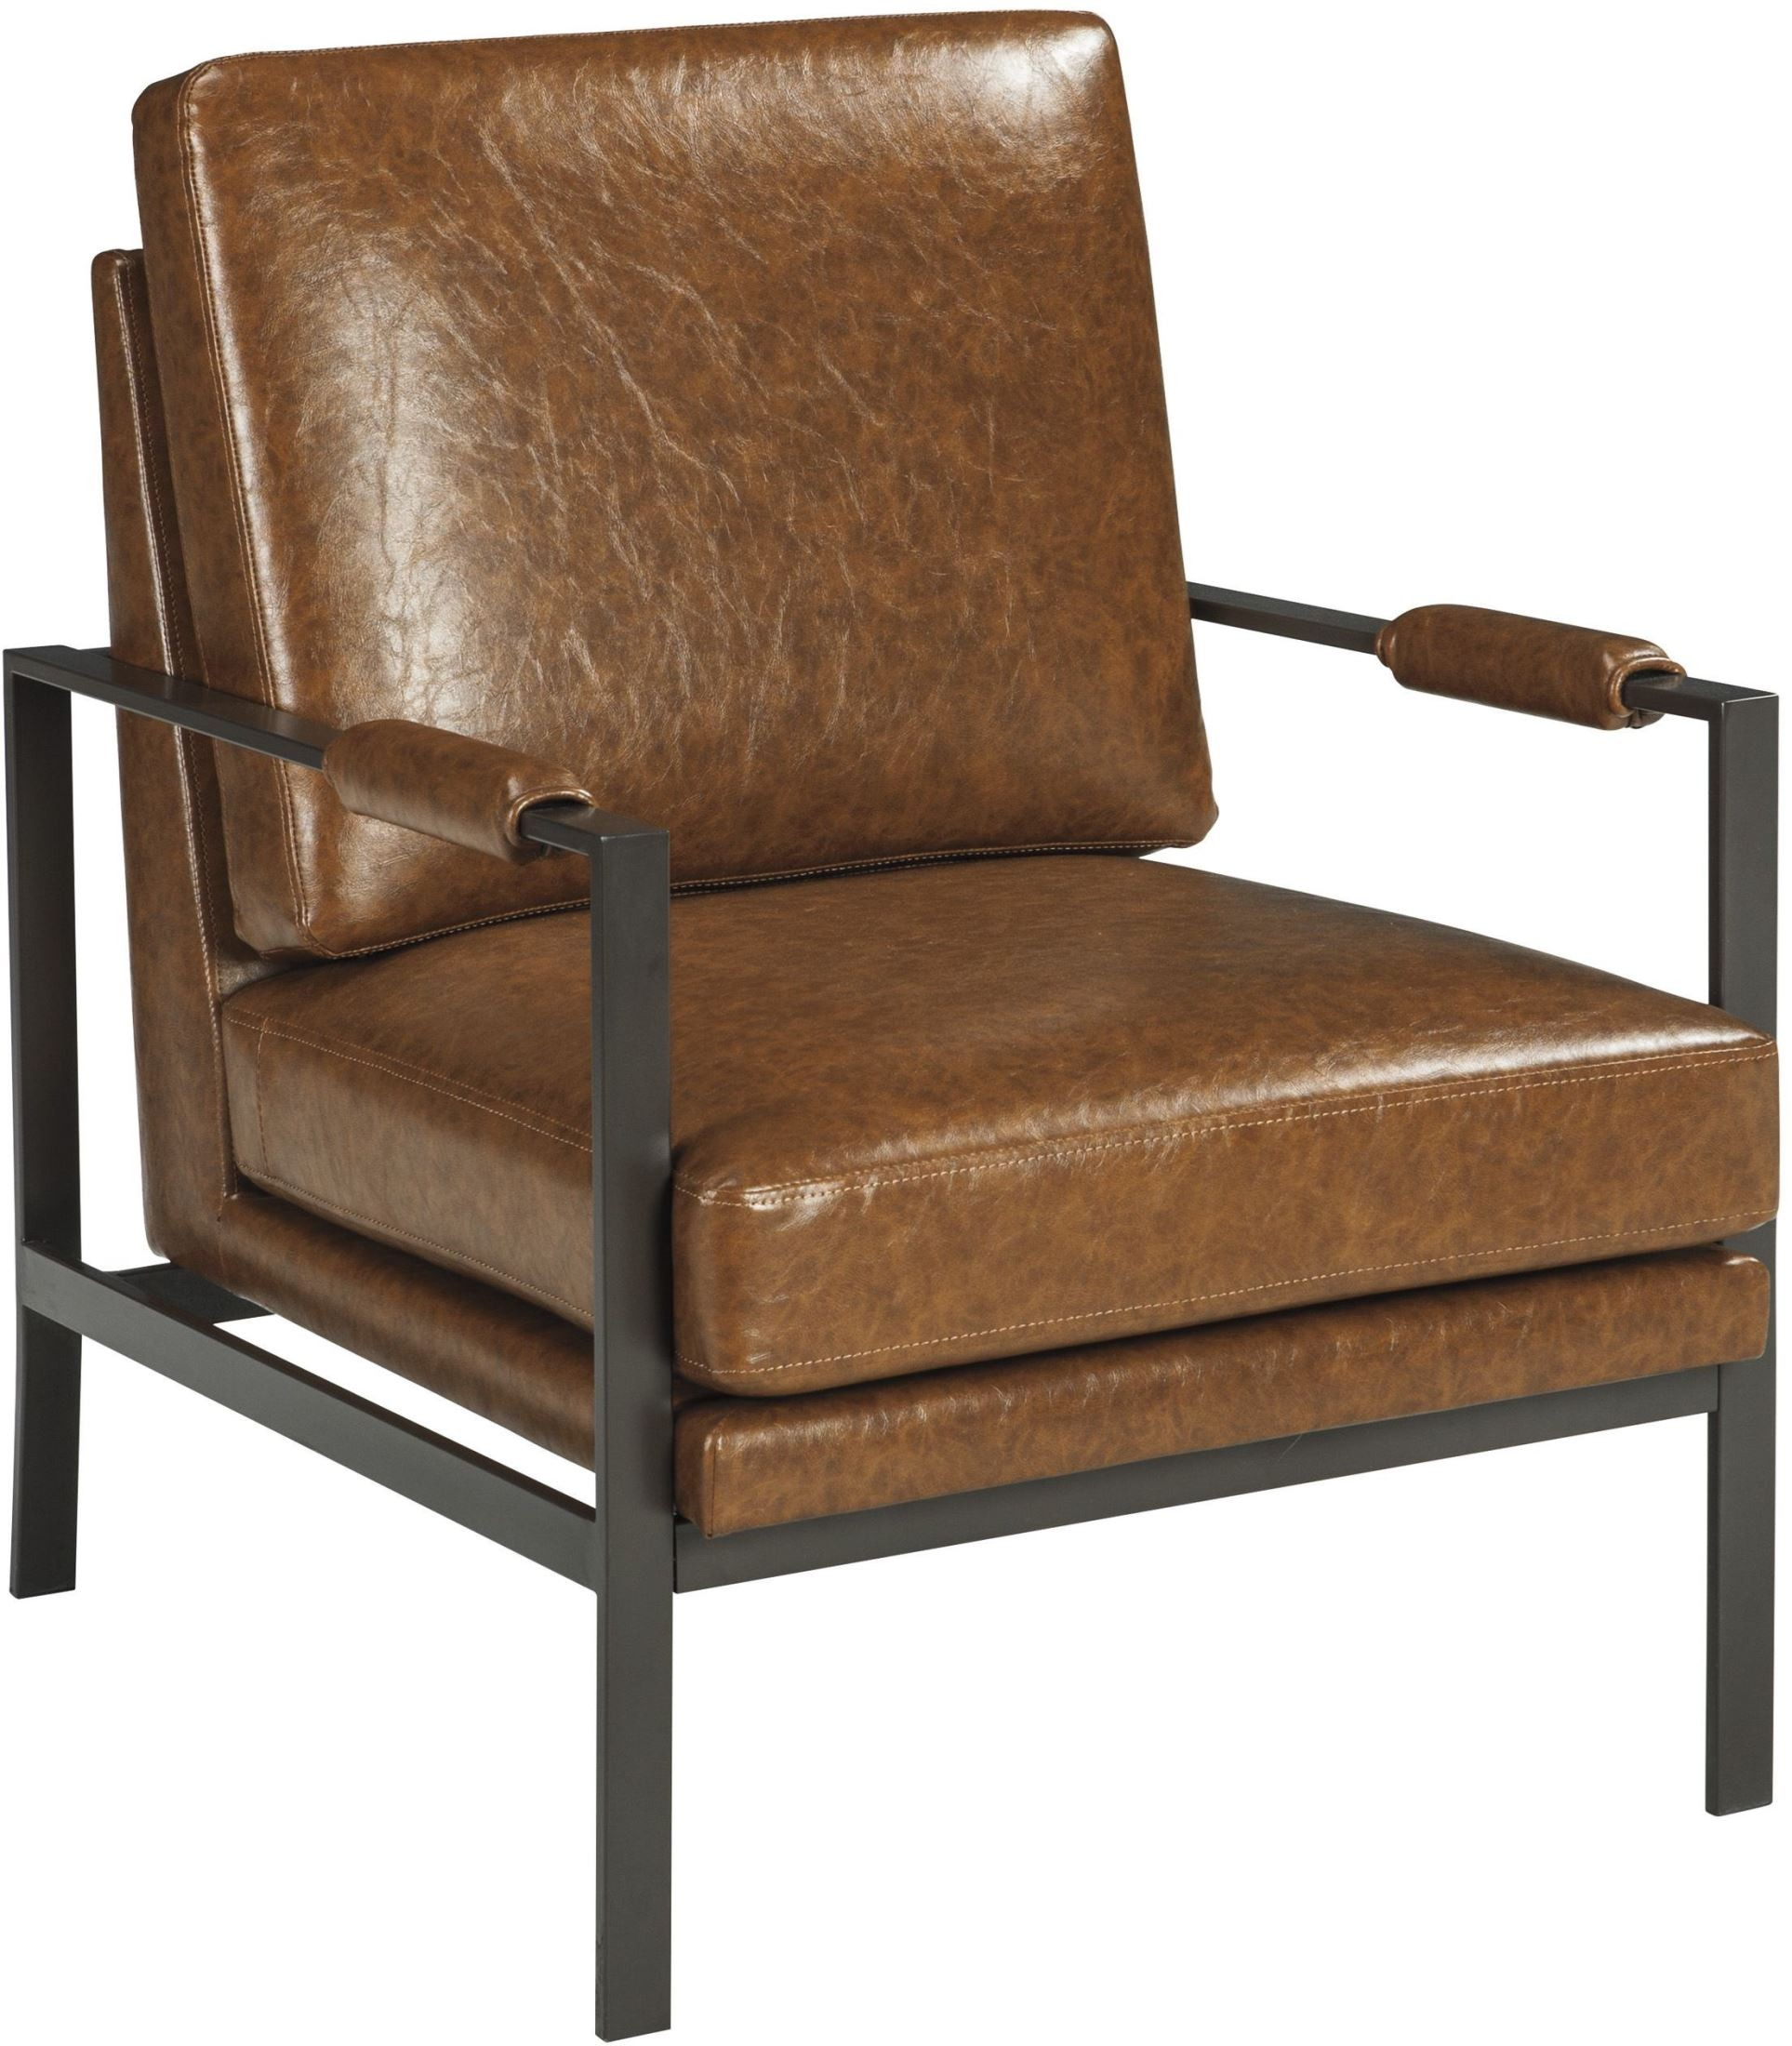 Brown Accent Chairs Peacemaker Brown Accent Chair From Ashley Coleman Furniture